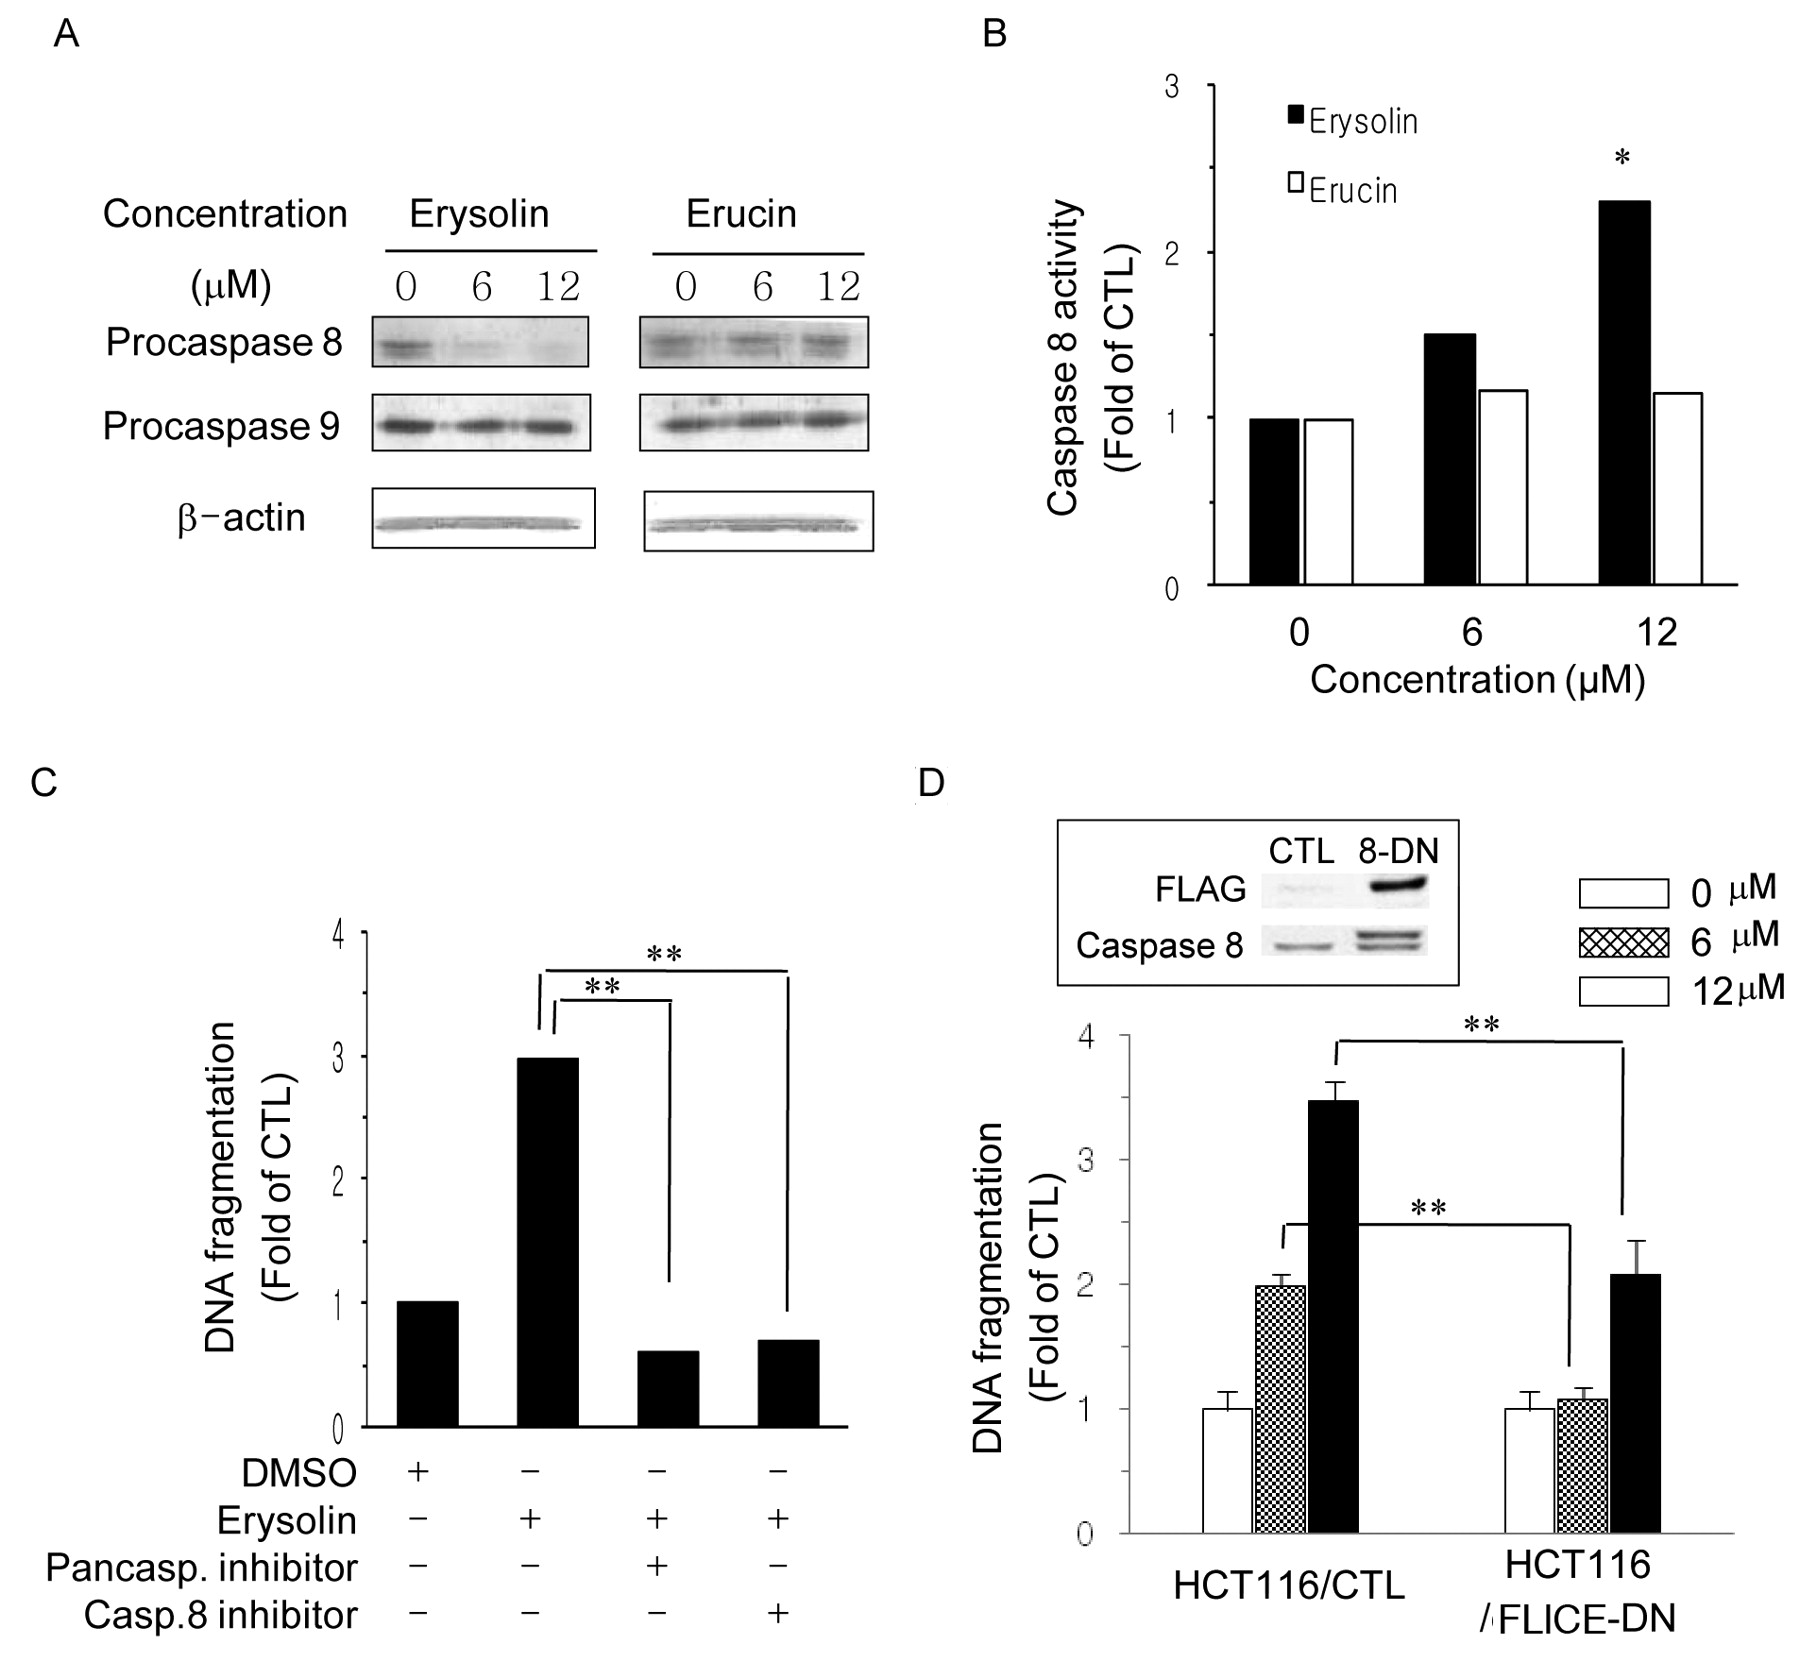 Comparison Of The Apoptosis Inducing Capability Of Sulforaphane Analogues In Human Colon Cancer Cells